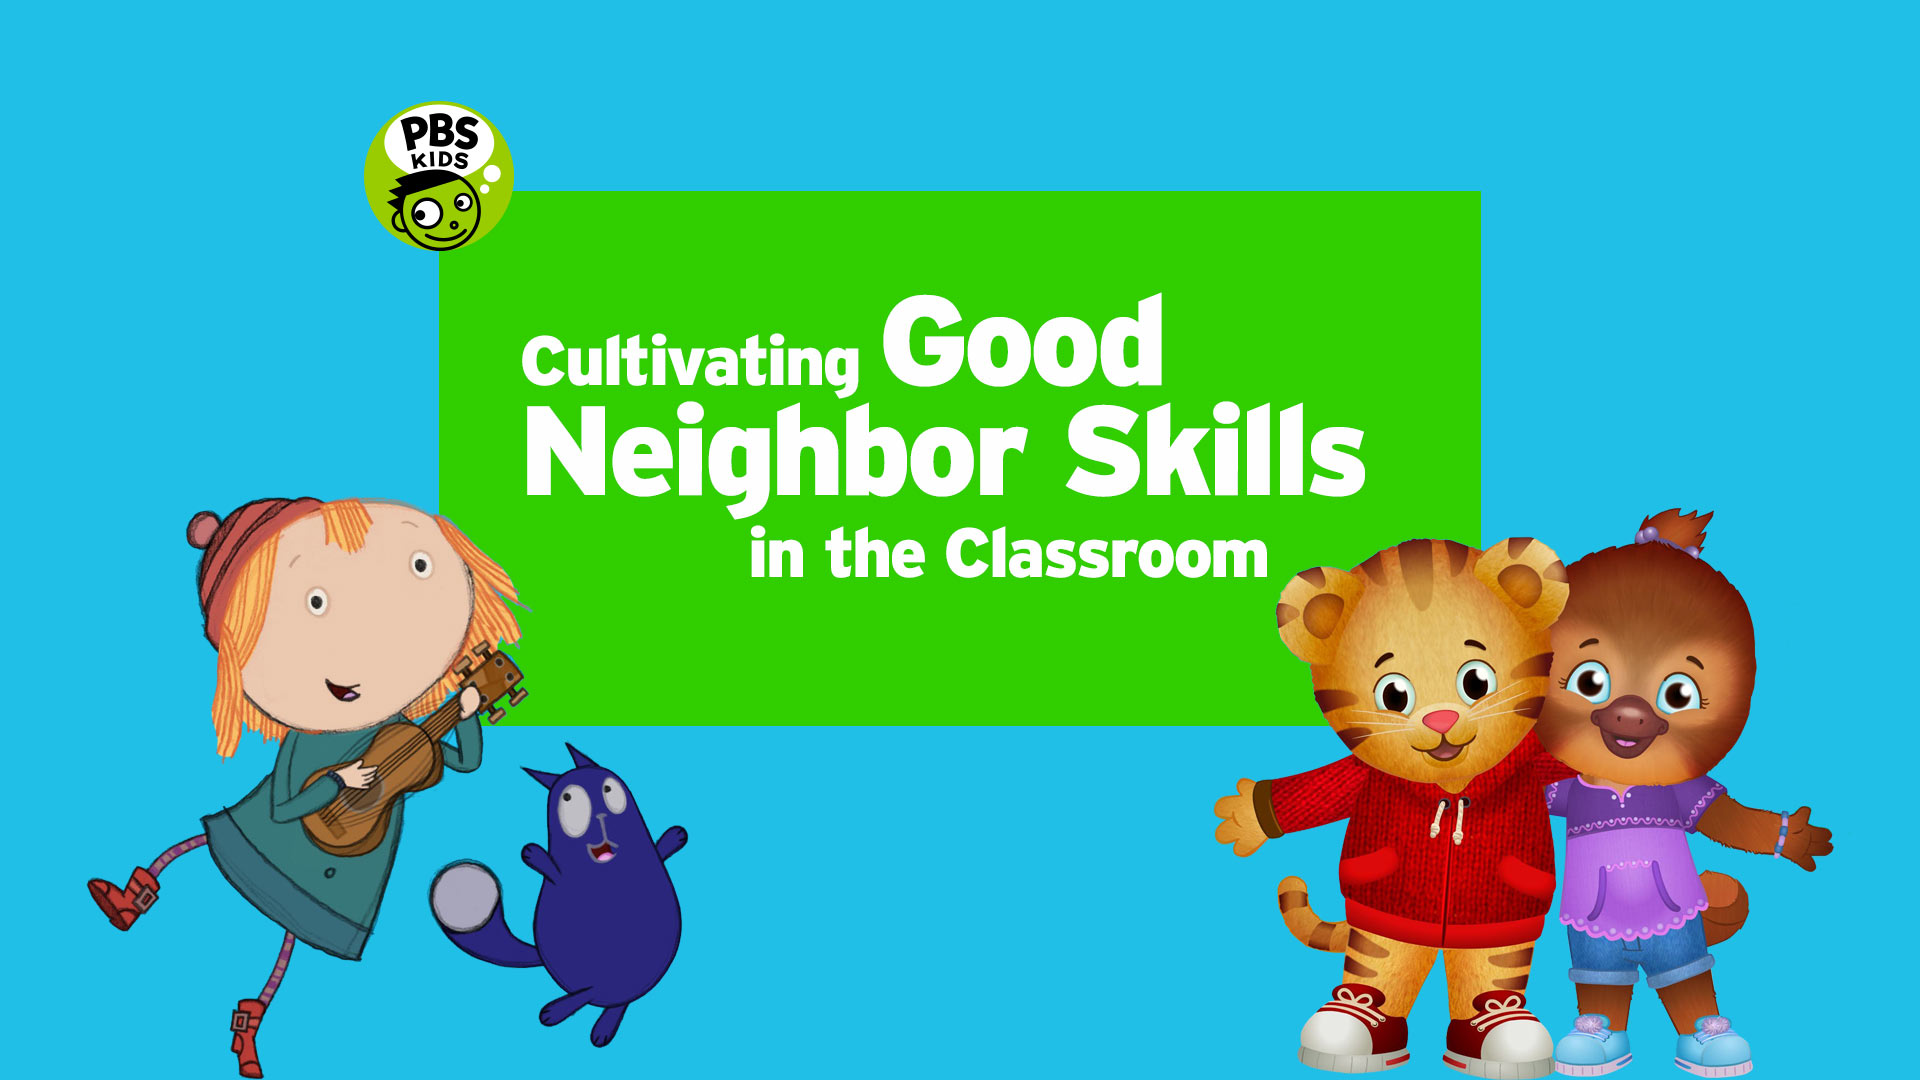 Social-Emotional 'Live-Learning' Series with PBS KIDS.